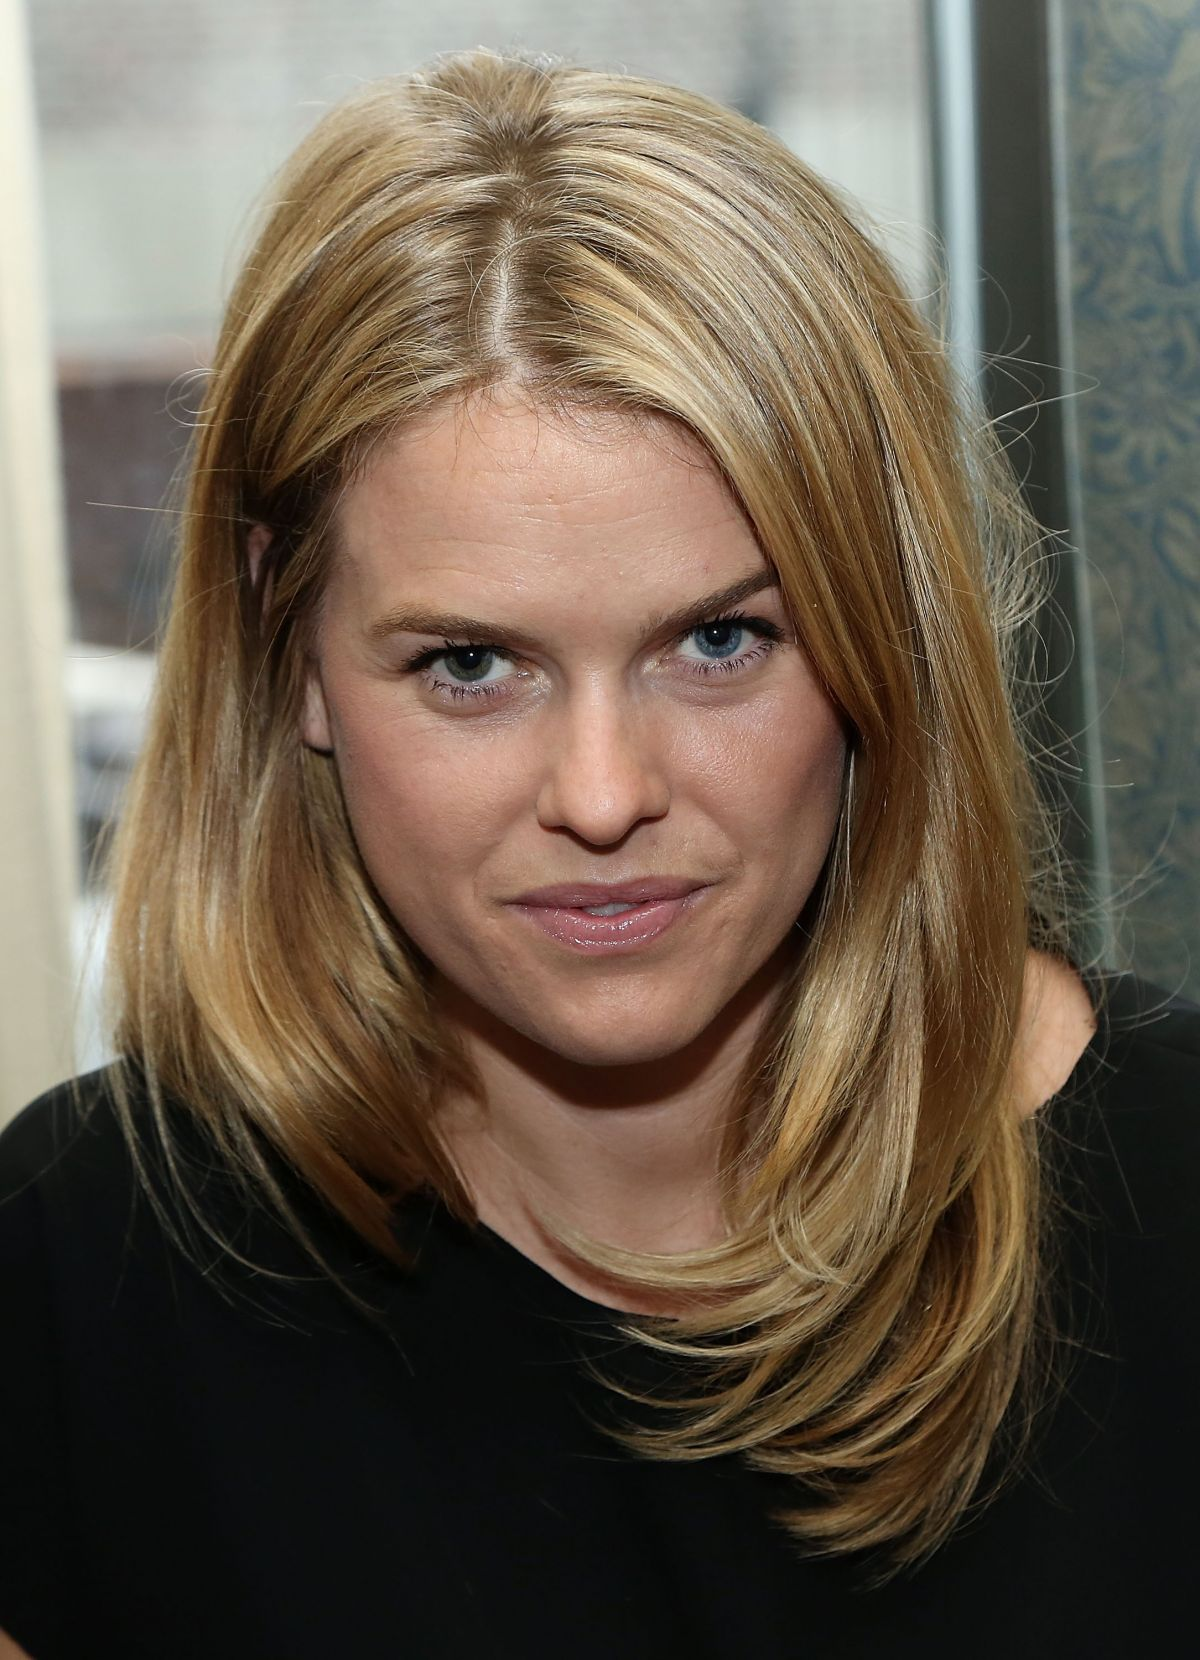 Alice eve at brits to watch bafta event in new york